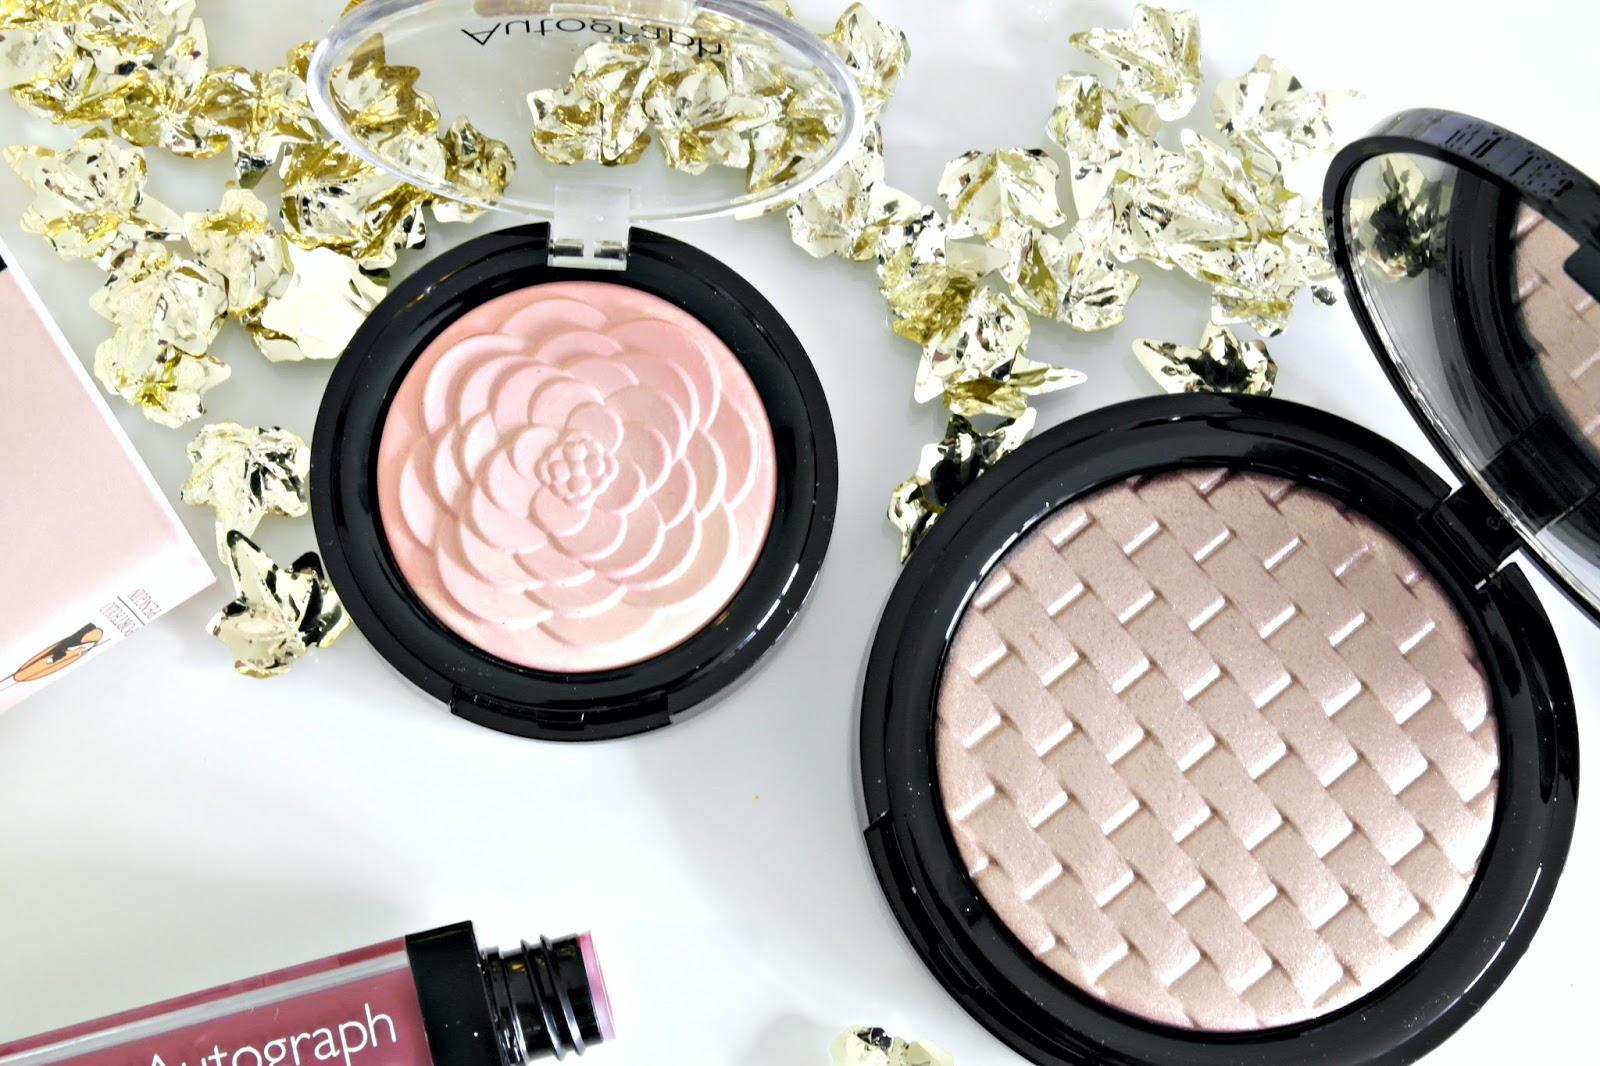 M&S makeup, luxe blusher and highlighter